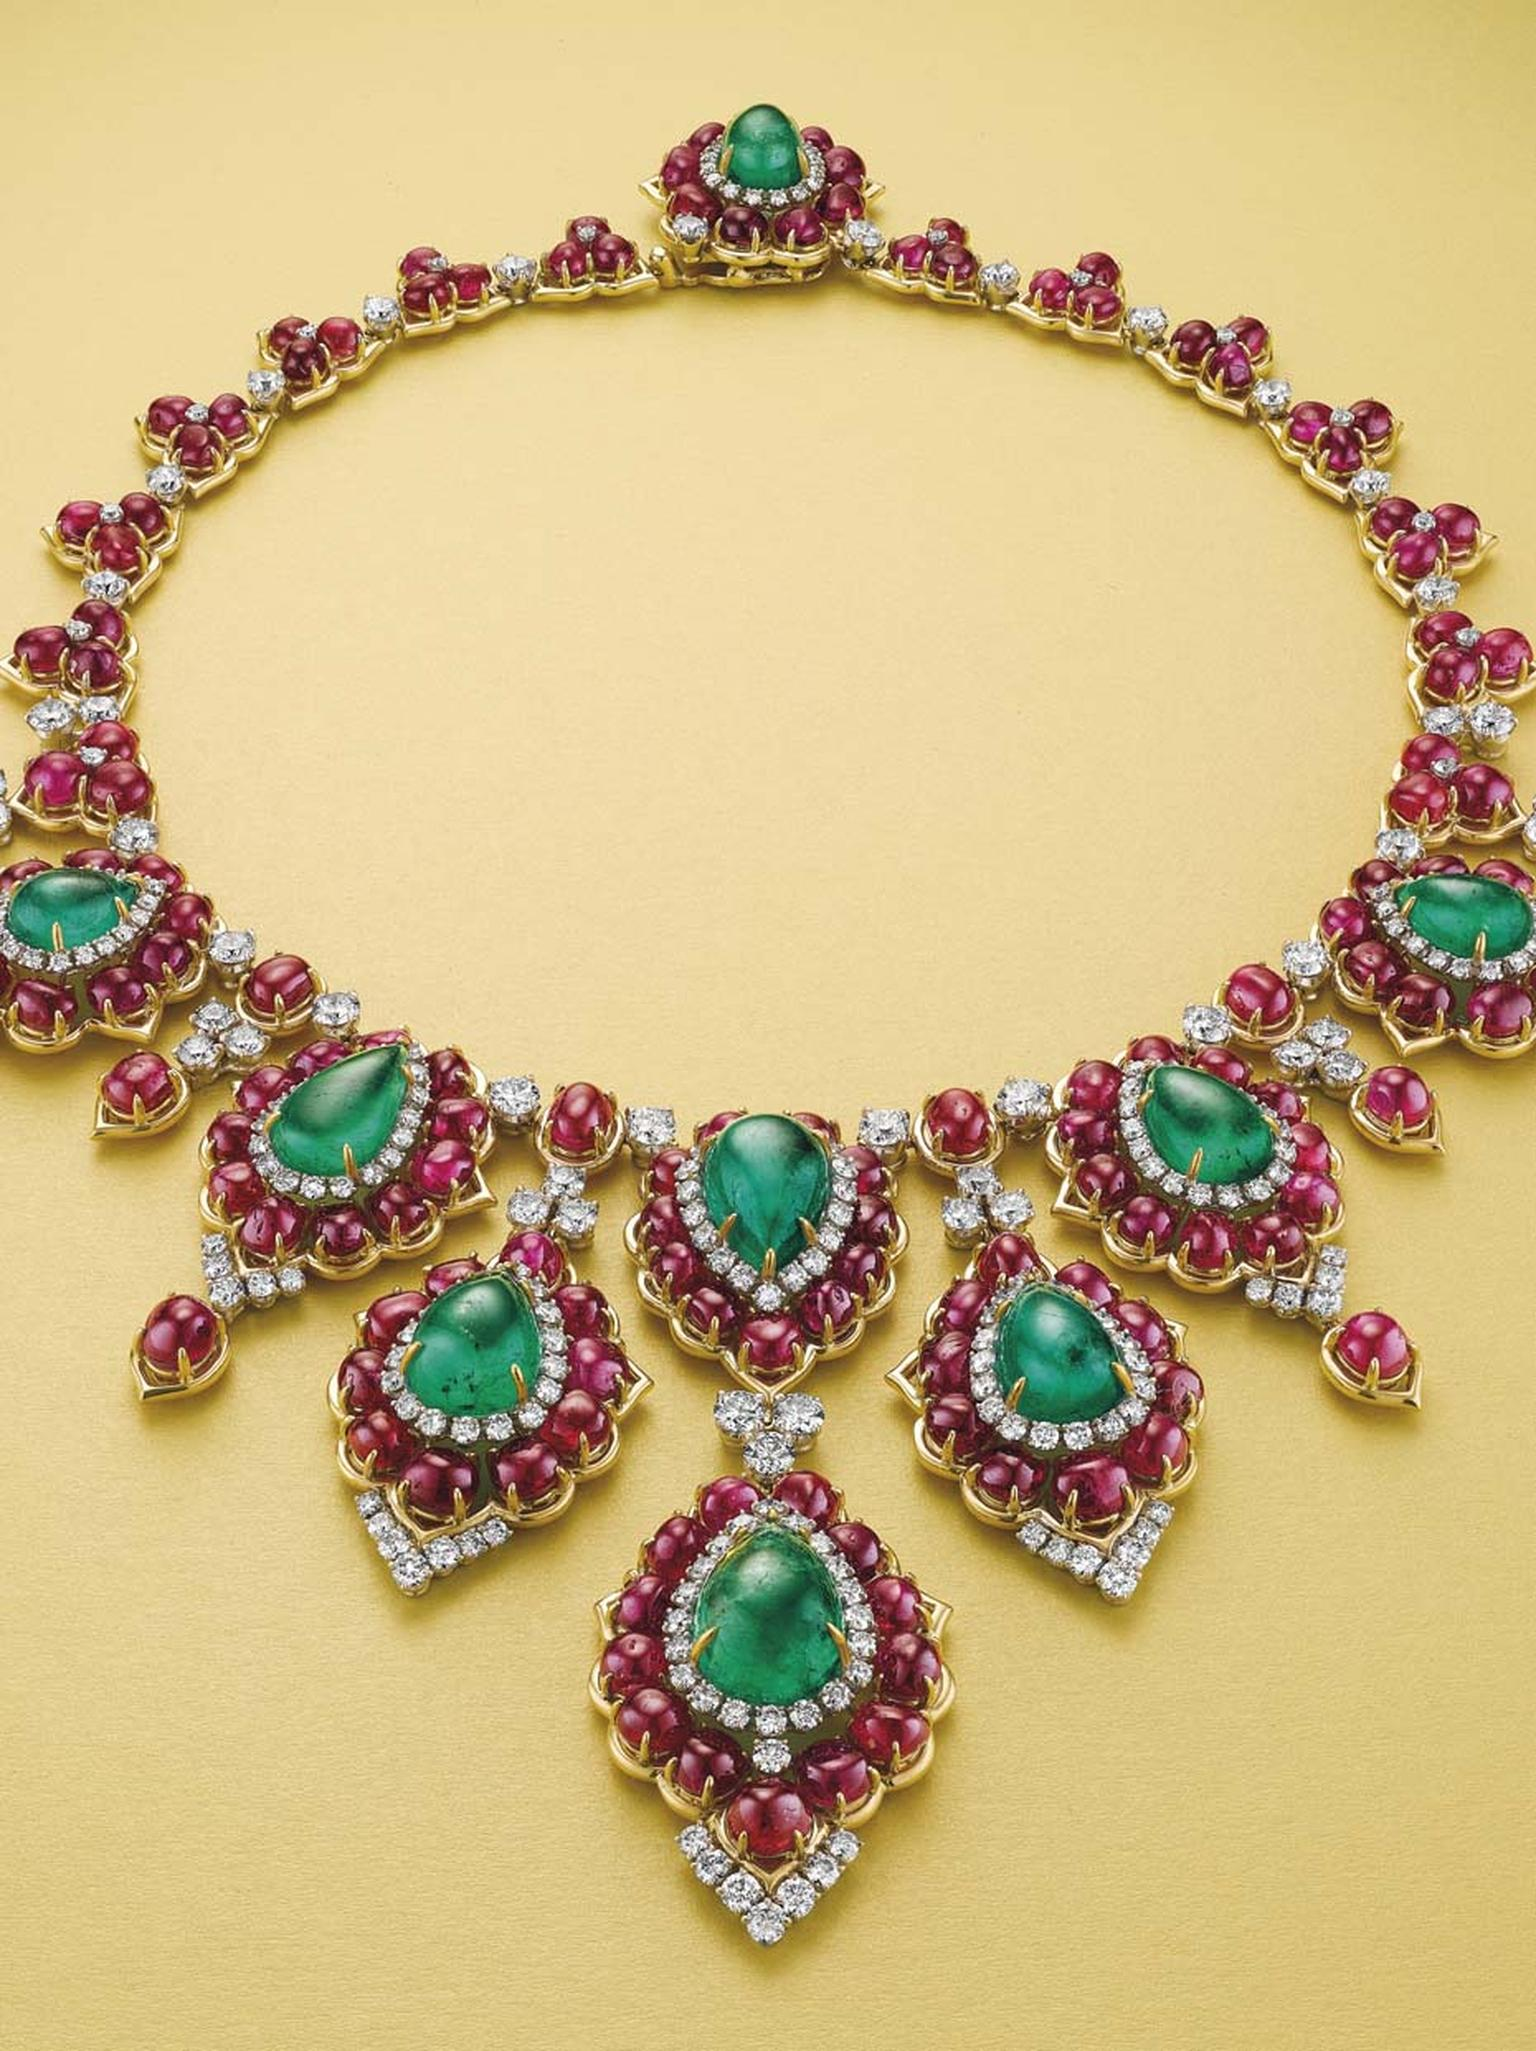 One of the highlights of Christie's Magnificent Jewels auction in New York is sure to be this superb emerald, ruby and diamond necklace by Bulgari, with an estimated value of $300-400,000.